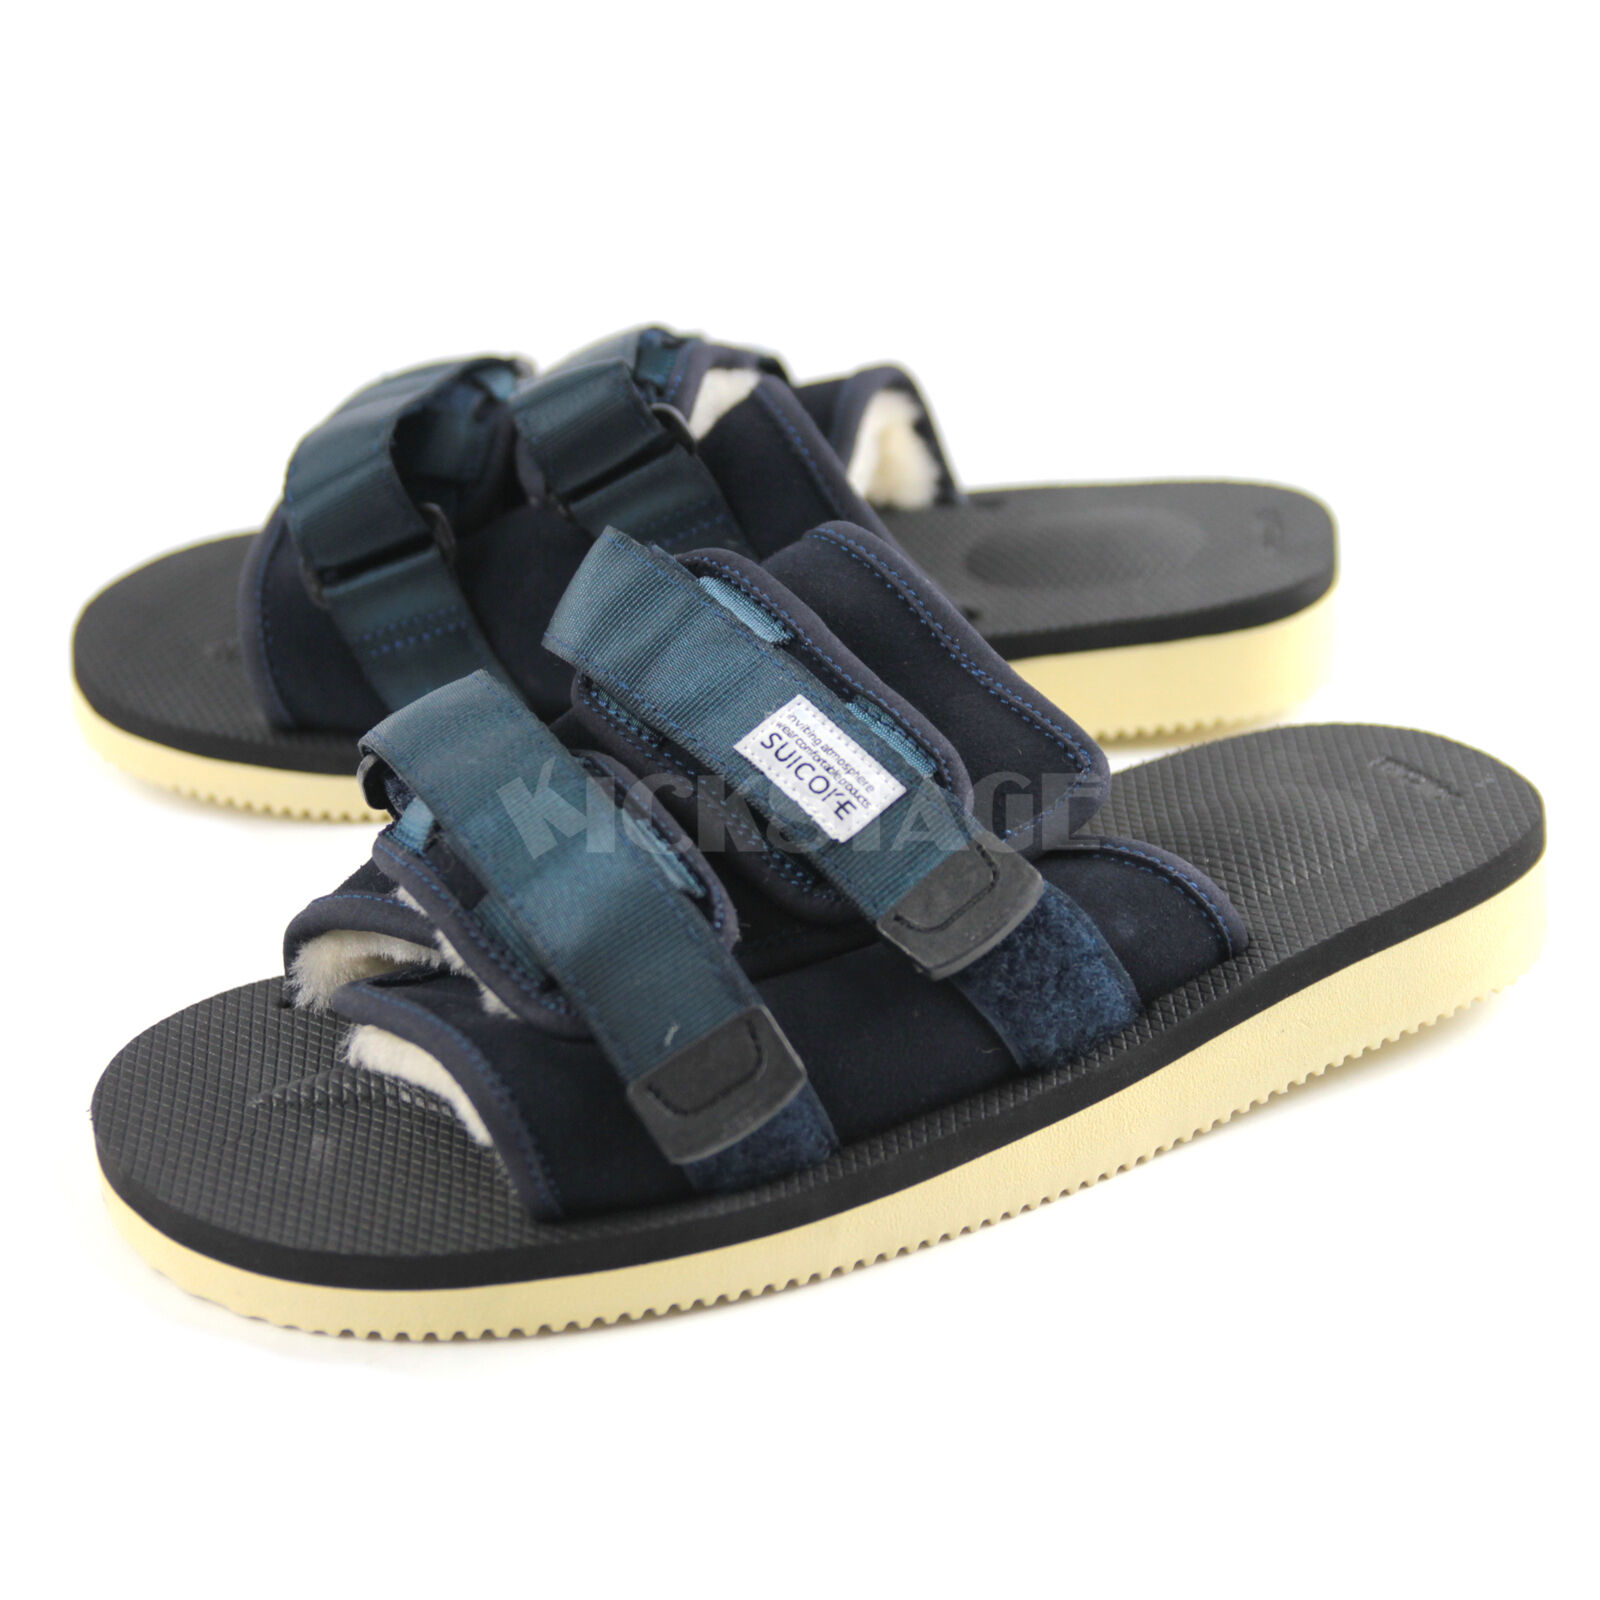 6670294d2cc6 Suicoke FW17 OG-056M   MOTO-M Navy Cow leather Mouton Sandals Slide SK056MNY